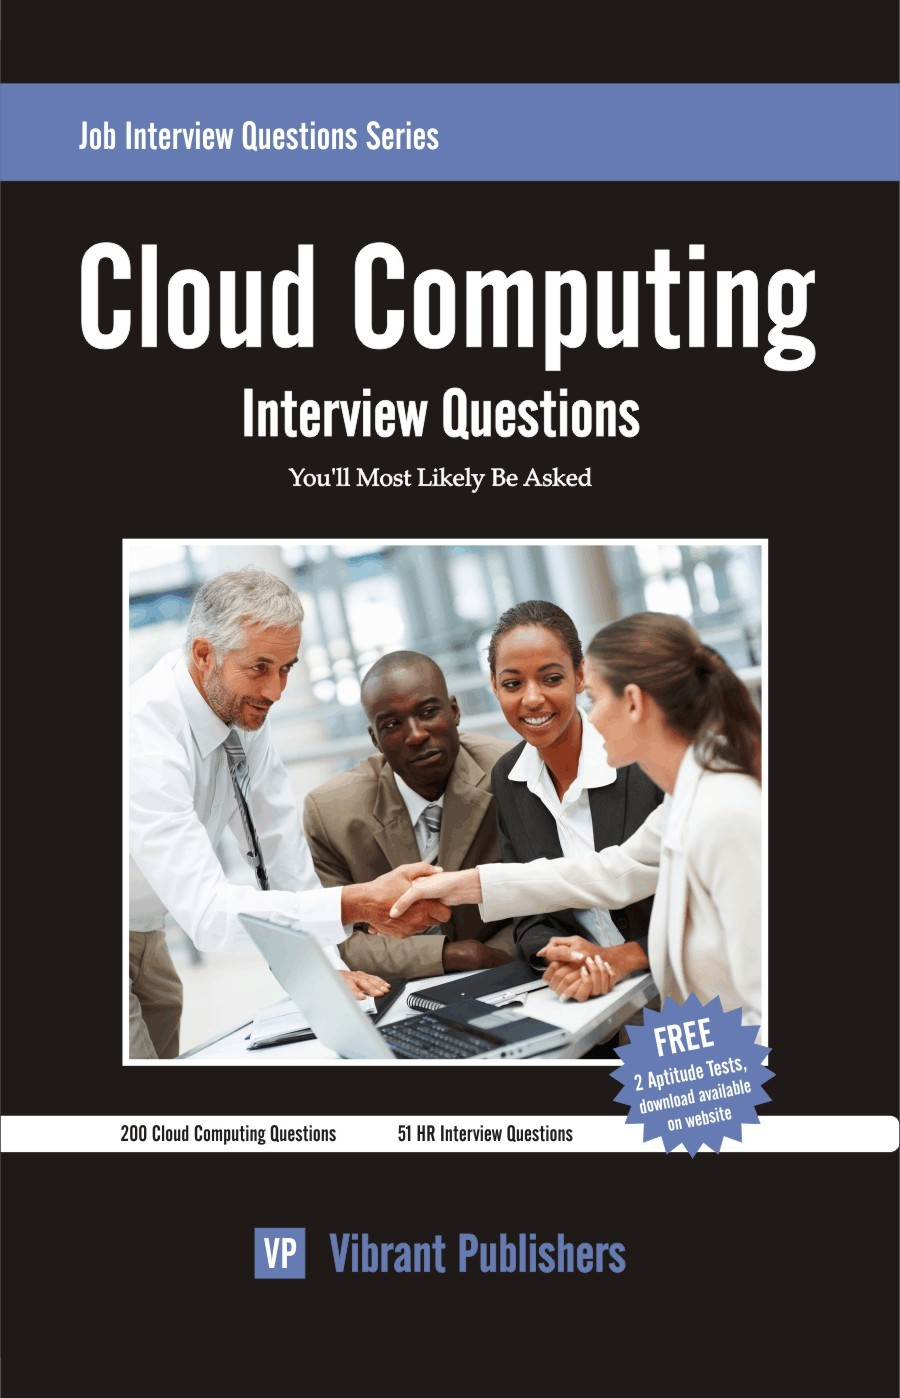 Cloud Computing Interview Questions You'll Most Likely Be Asked By: Vibrant Publishers